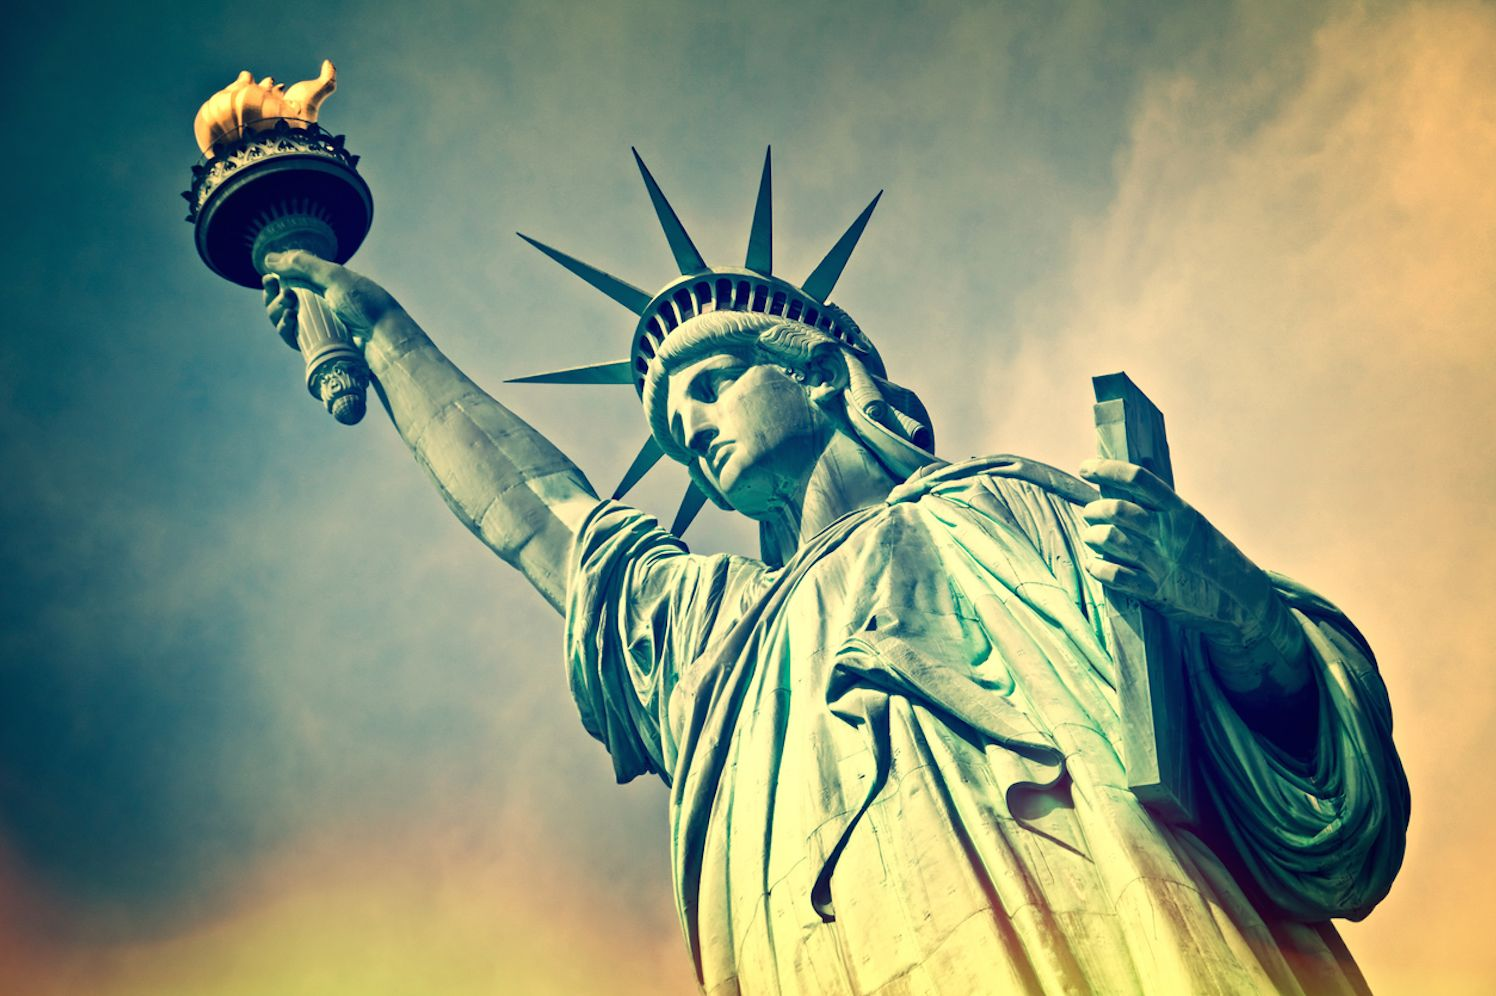 b6758ad734ce5 10 Amazing Statue of Liberty Facts